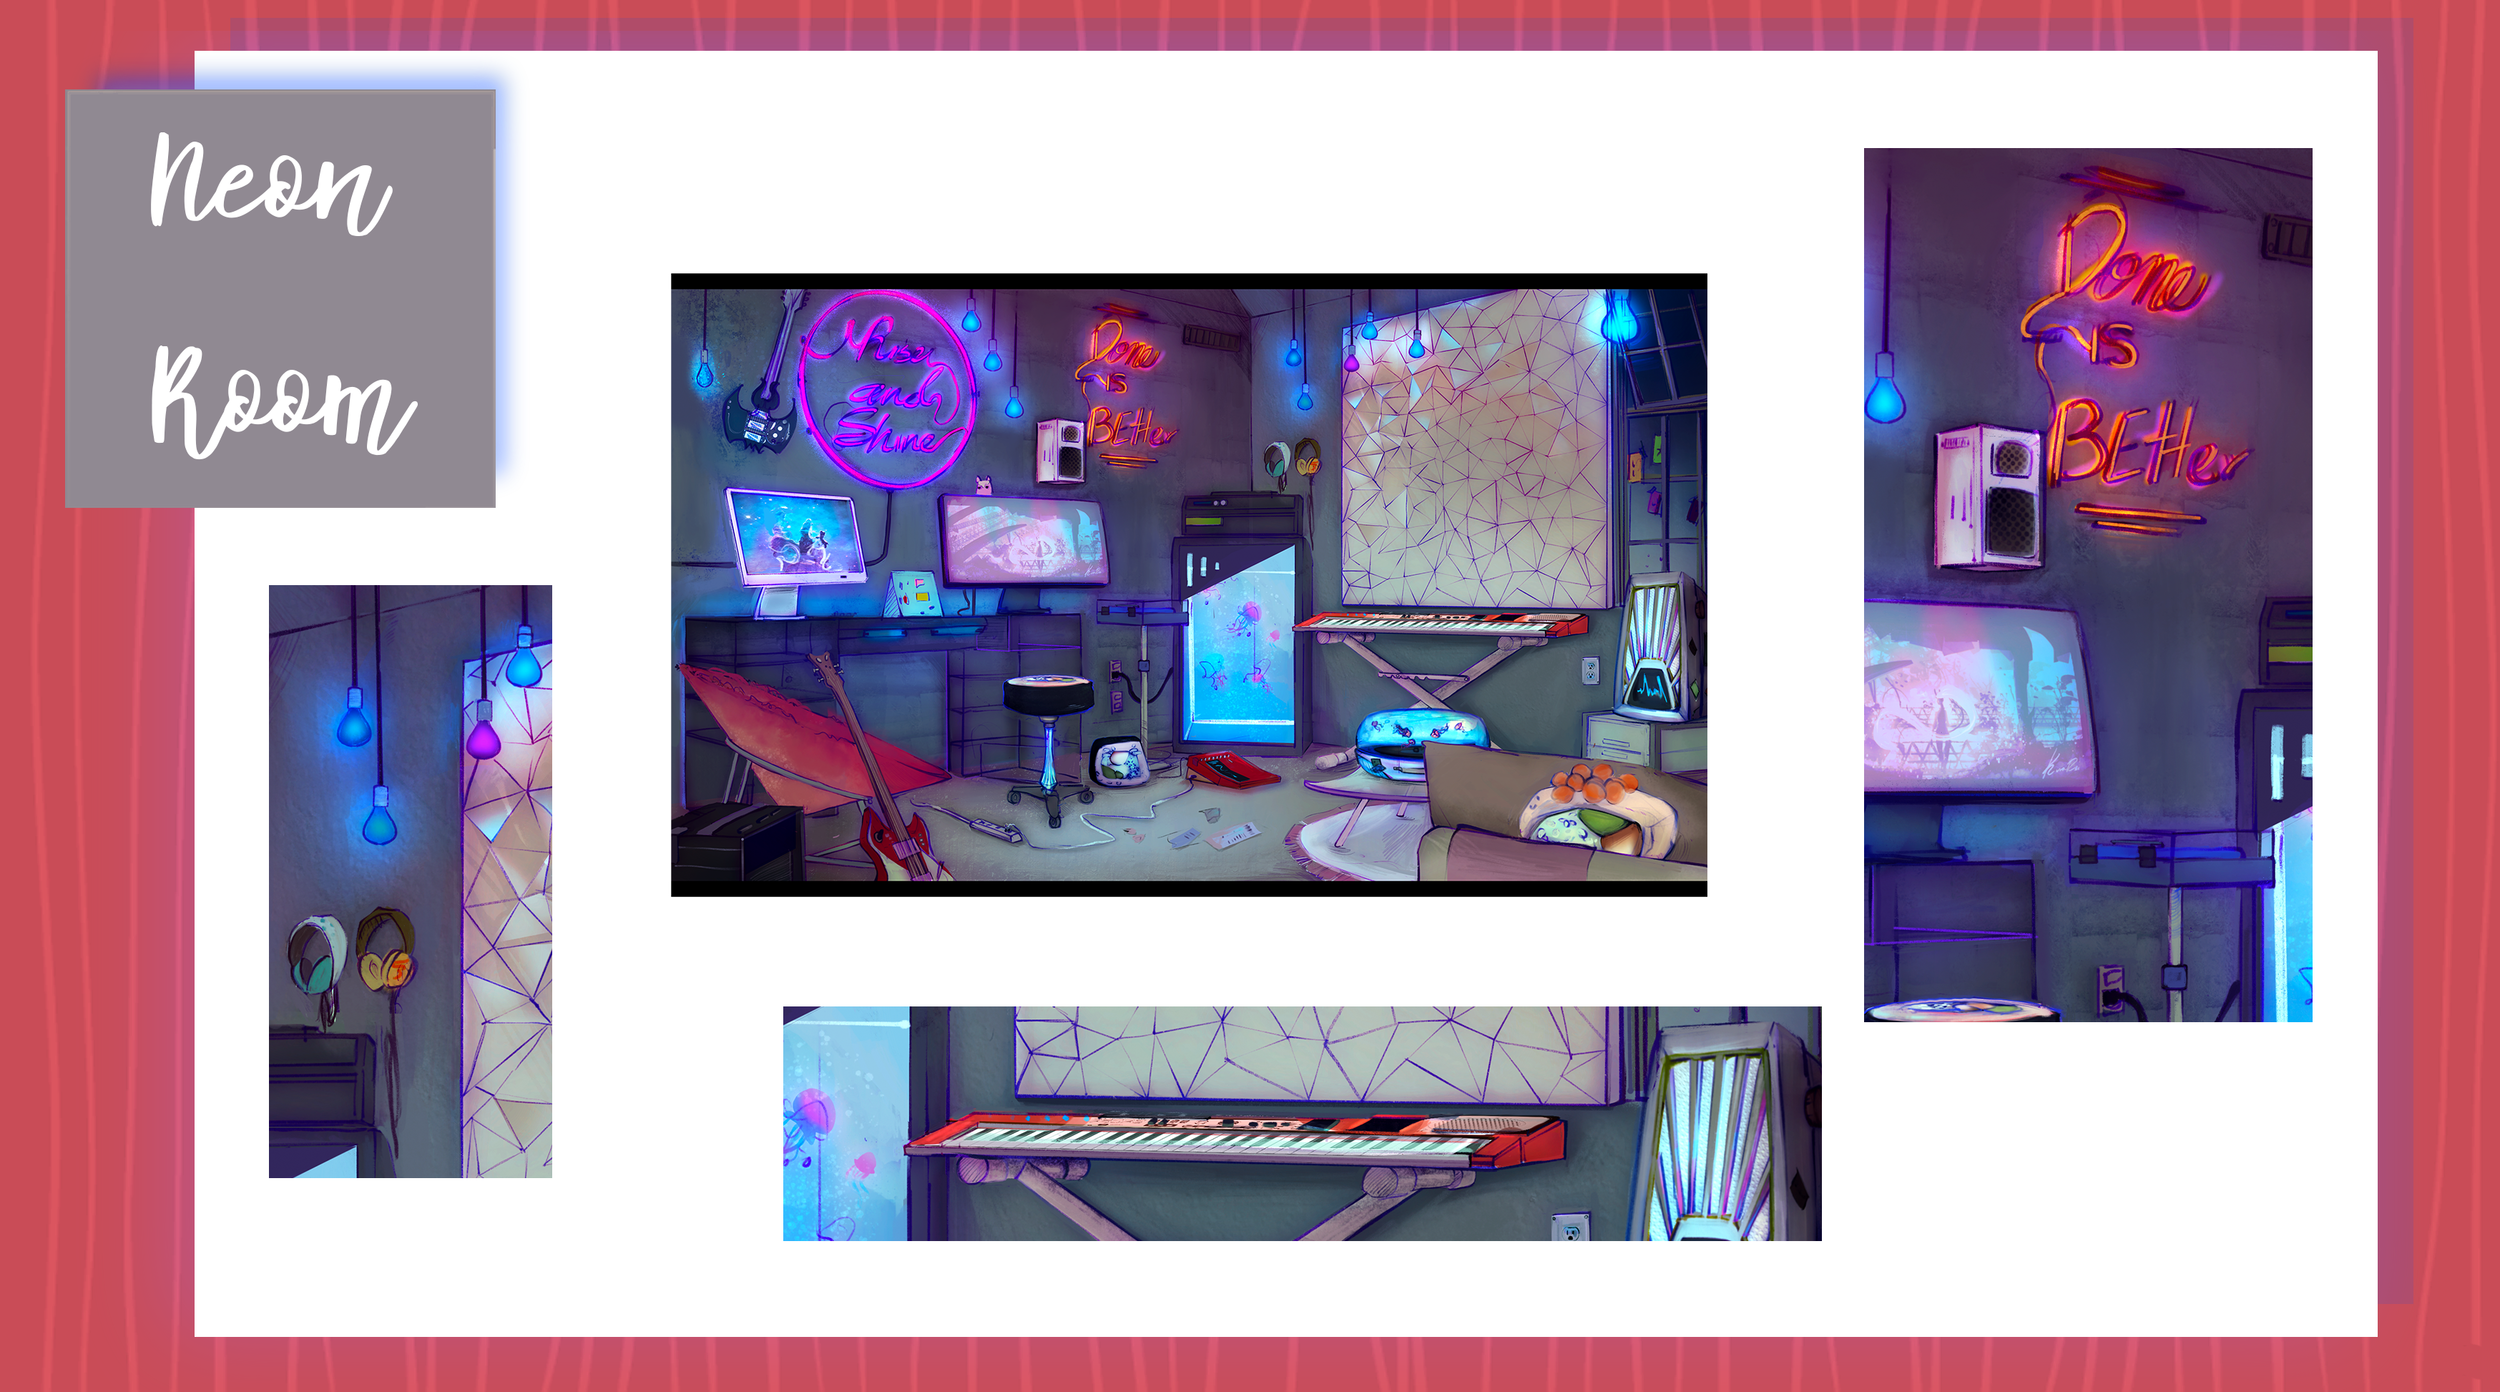 15_Neon_Room_Detail.png